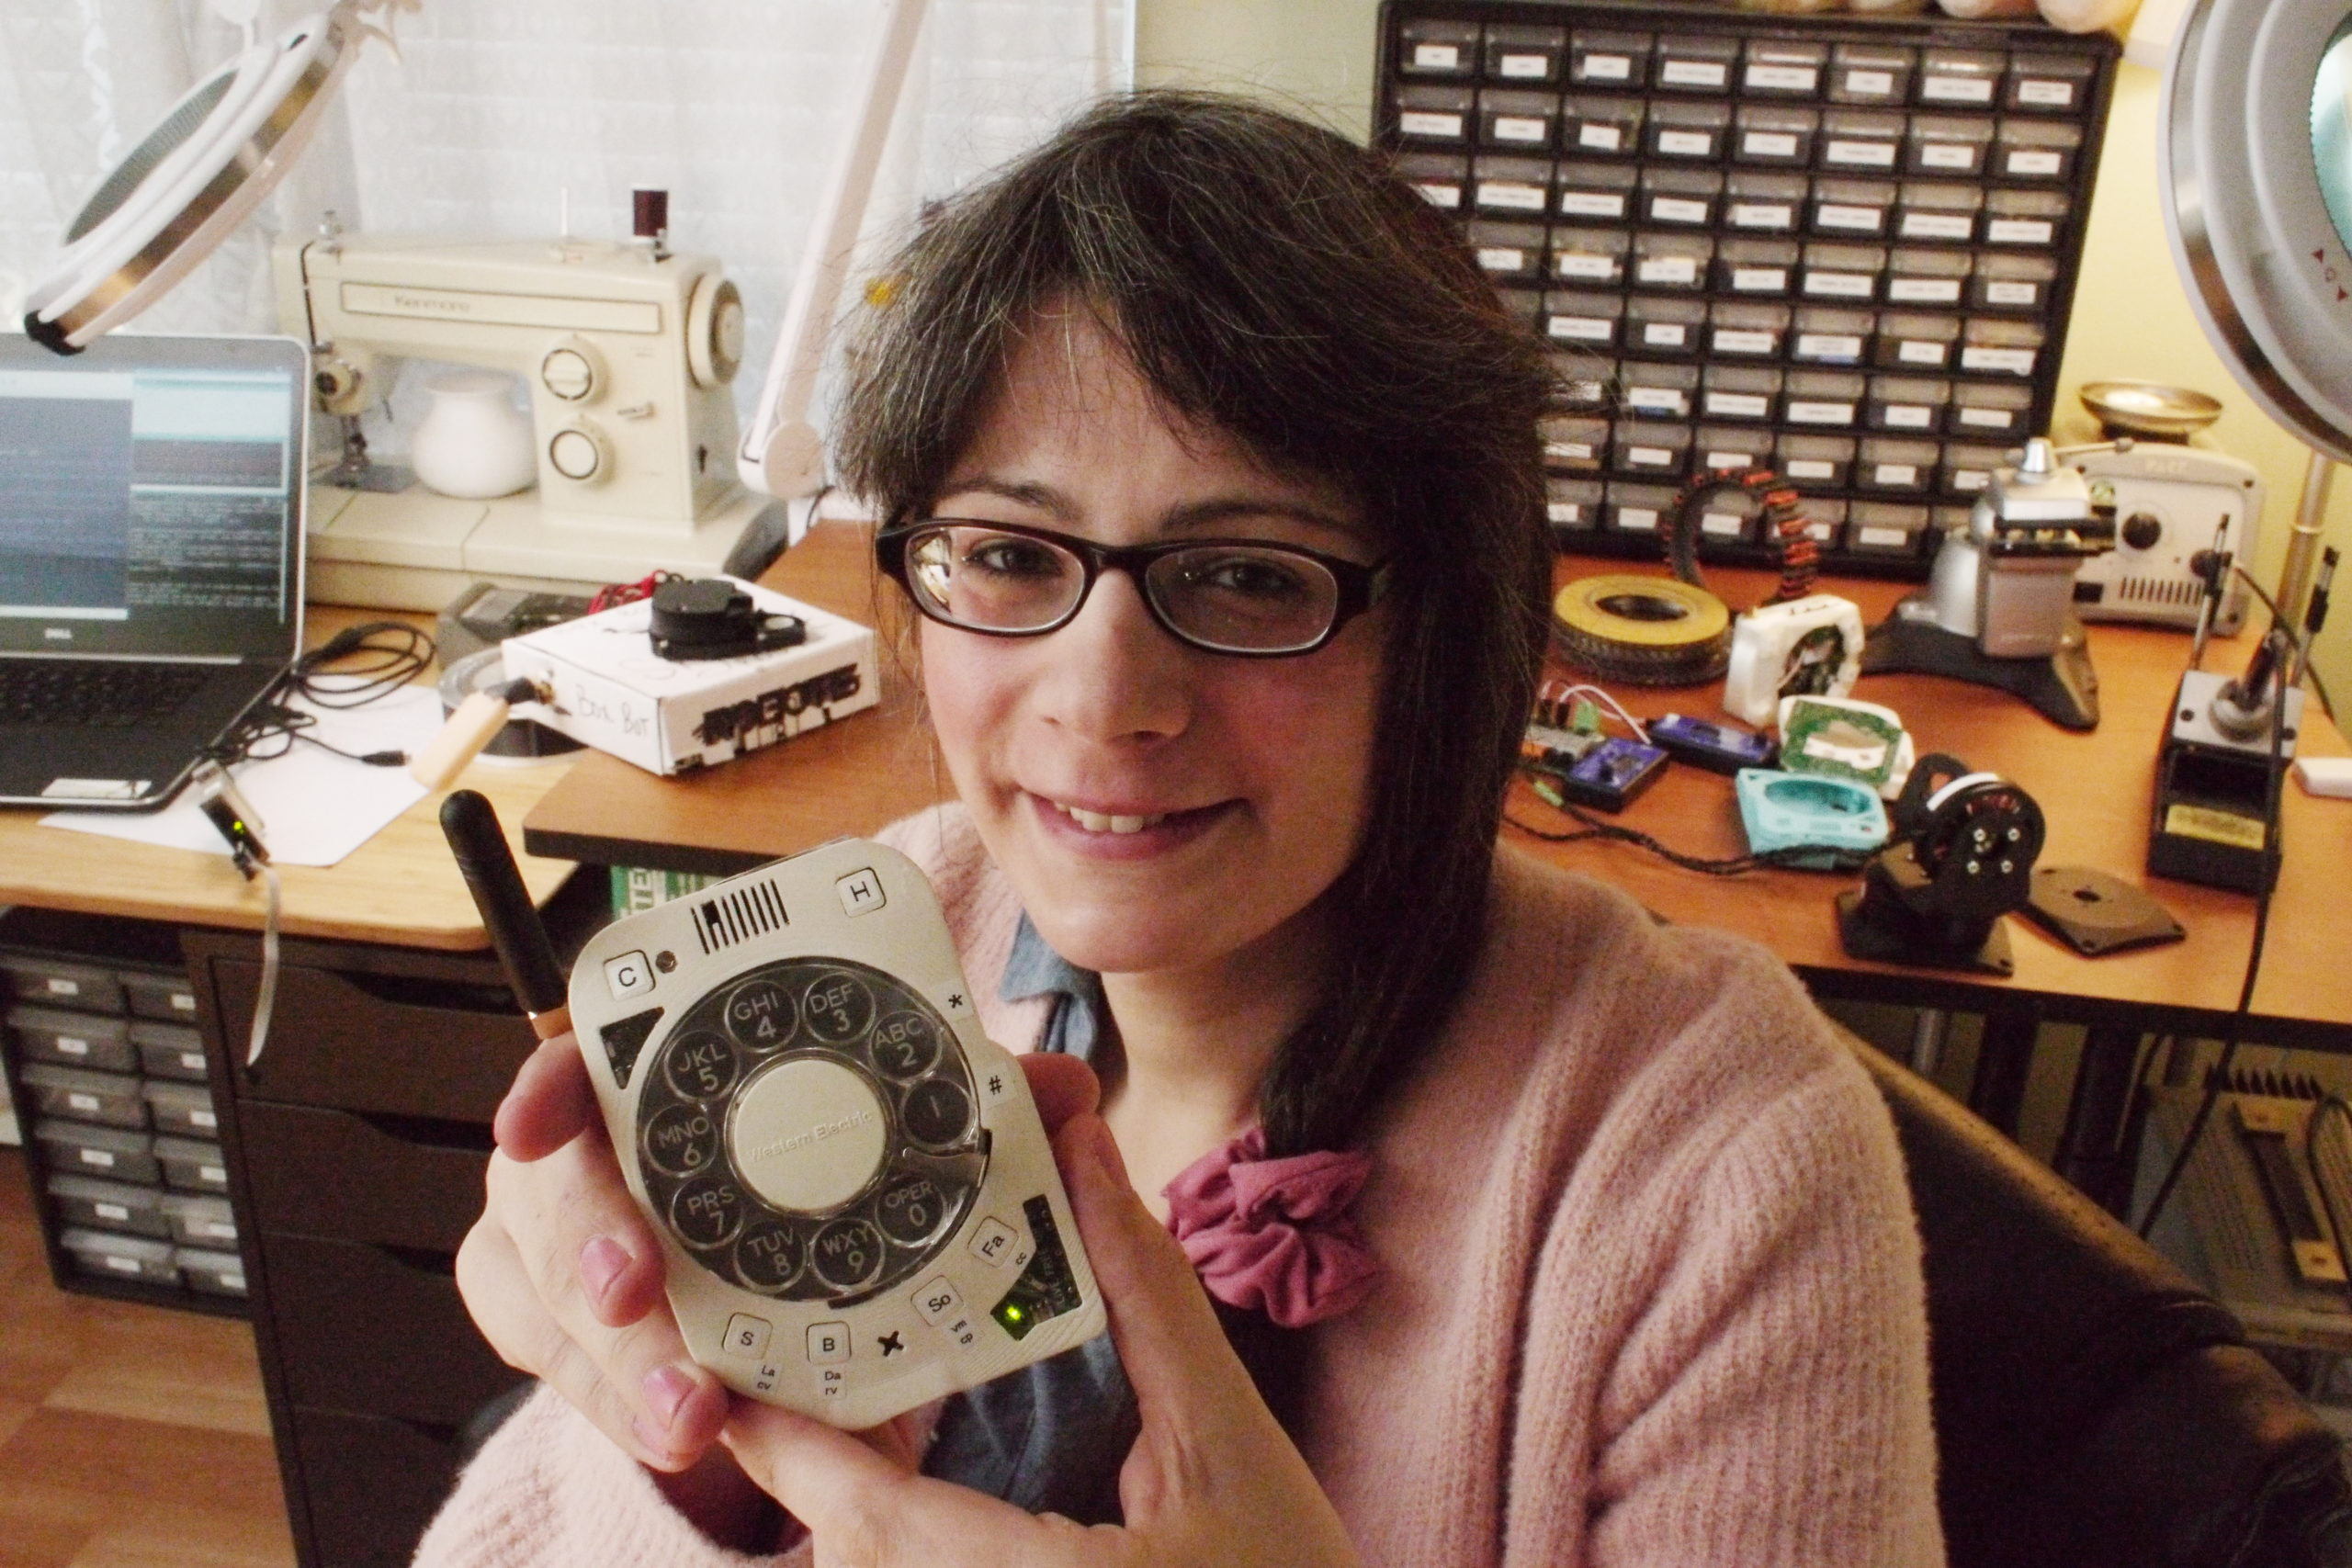 New York Engineer Builds a Distraction-Free Phone with Rotary Dials